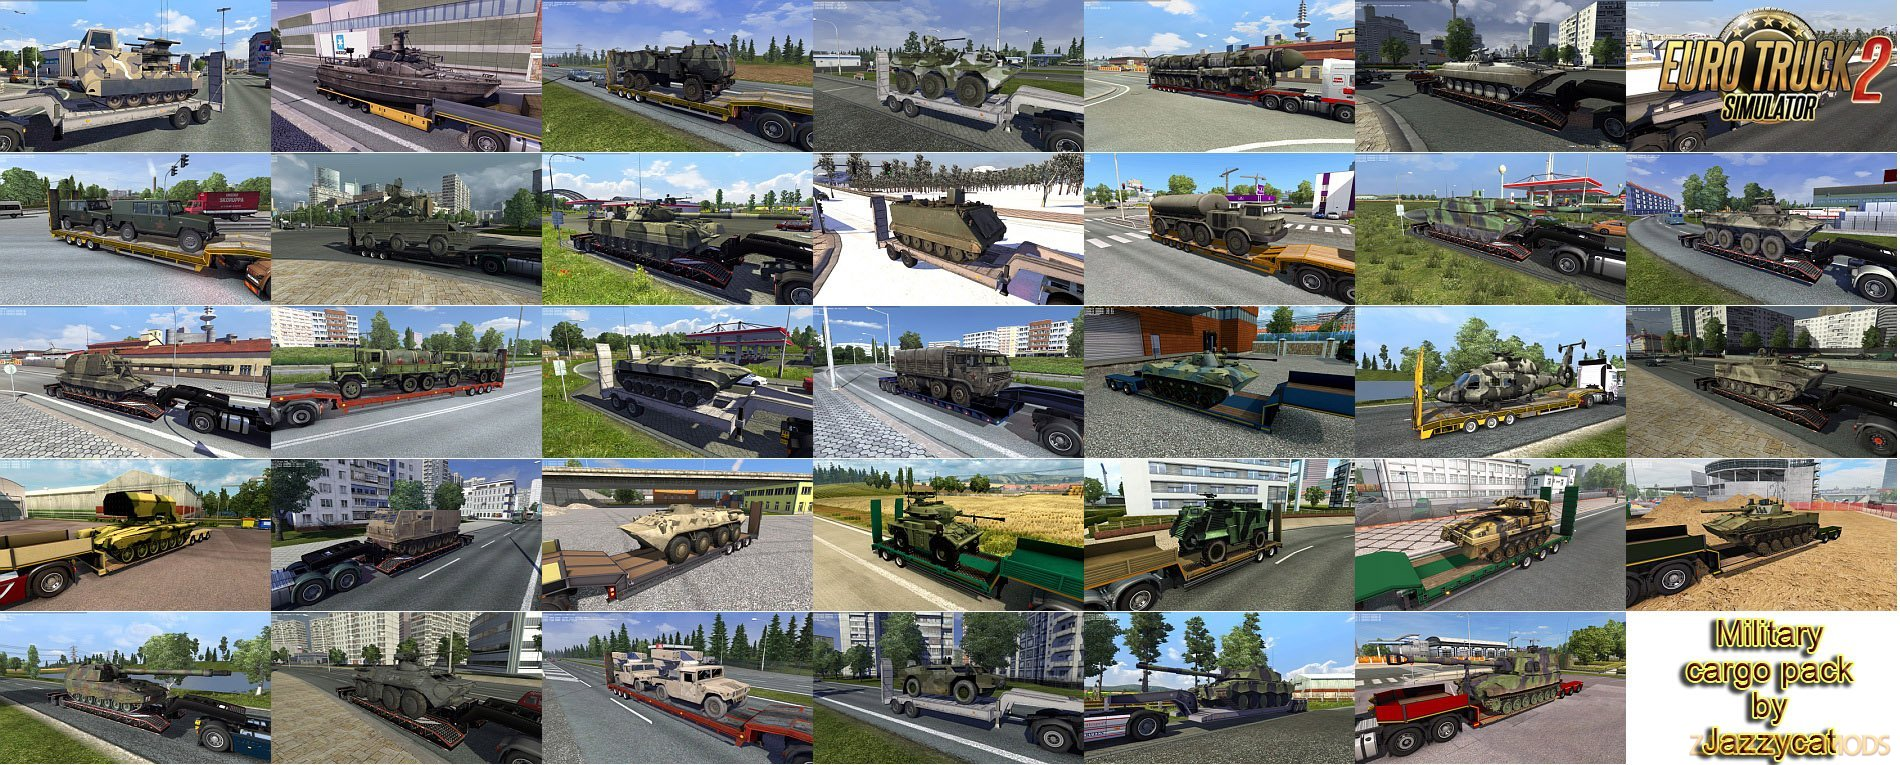 Military Cargo Pack v3.3 by Jazzycat